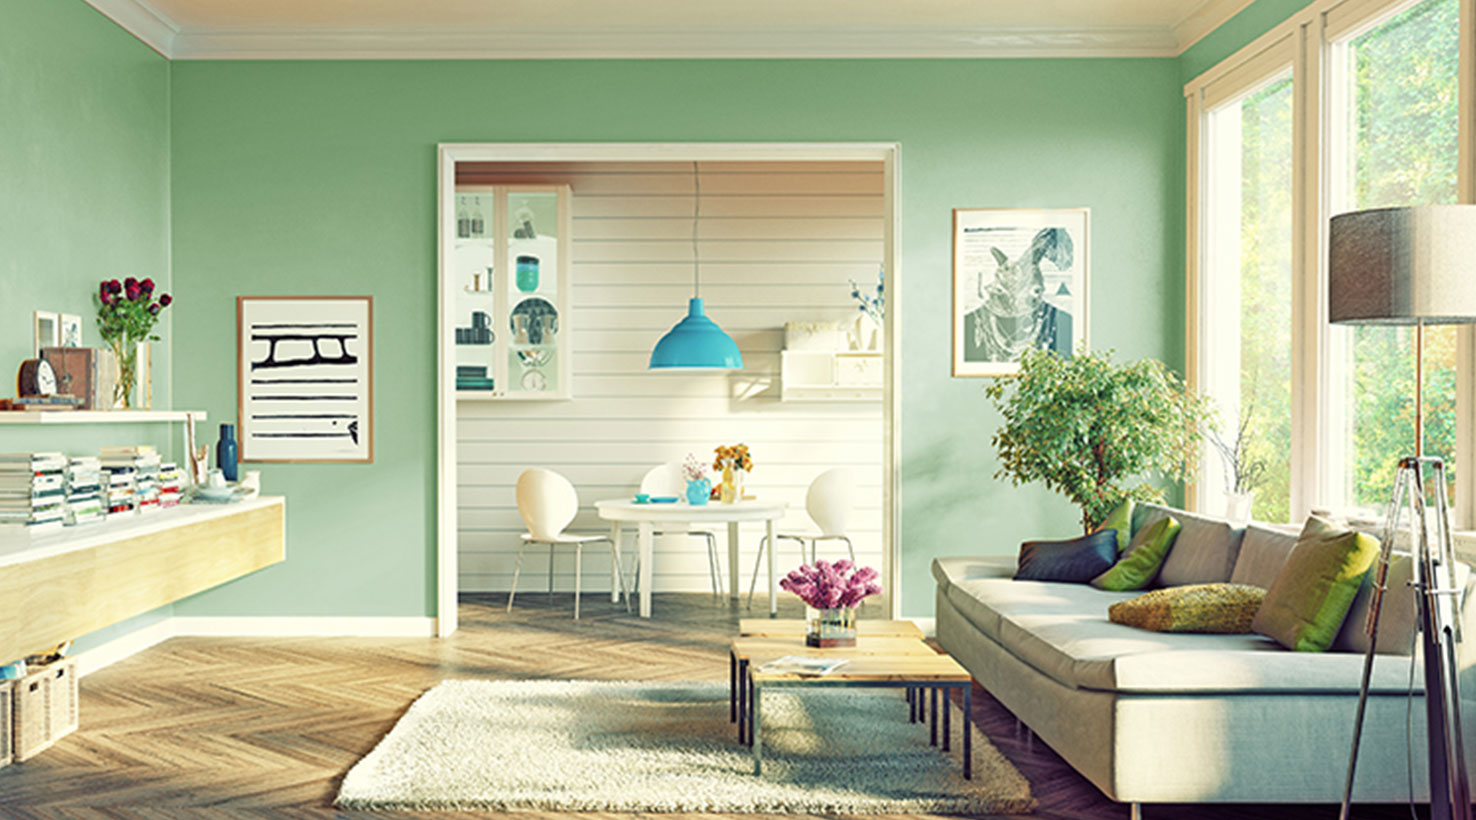 wall painting living room contemporary designs paint color ideas inspiration gallery sherwin williams greens